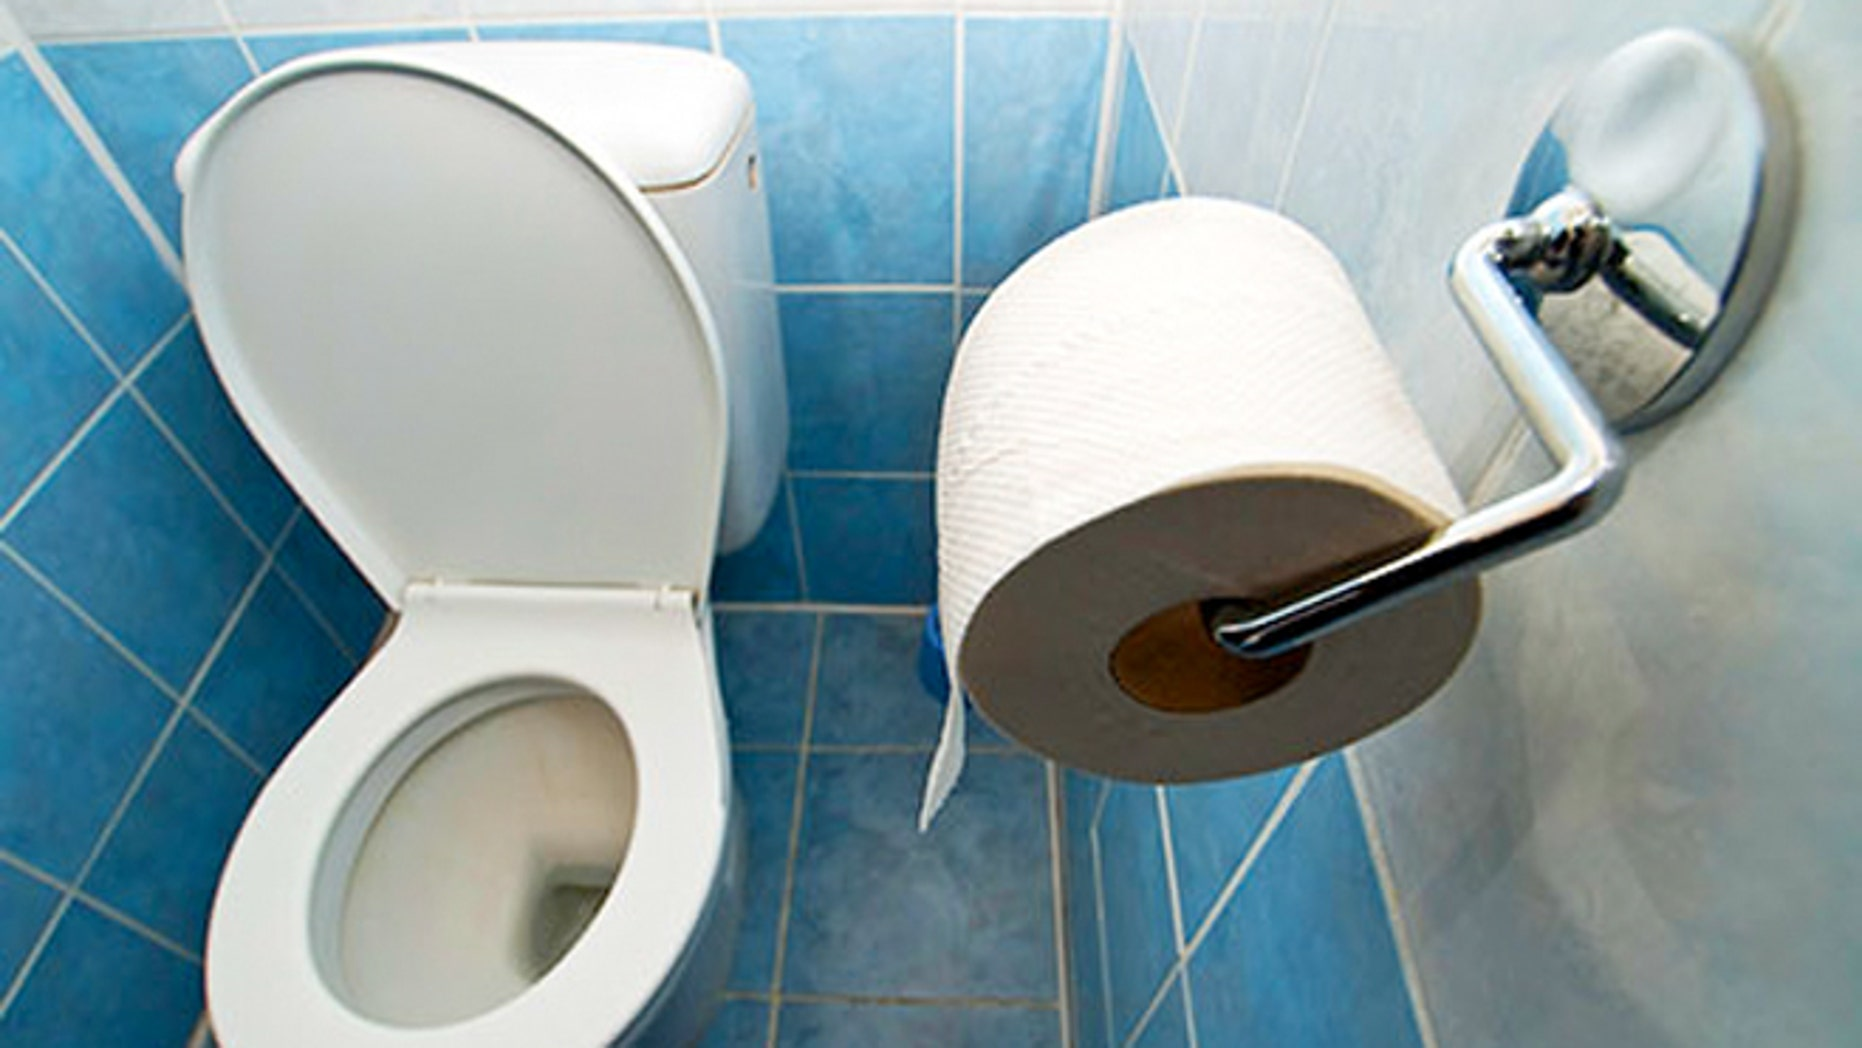 Restaurant bathrooms might not be as private as you think they are.